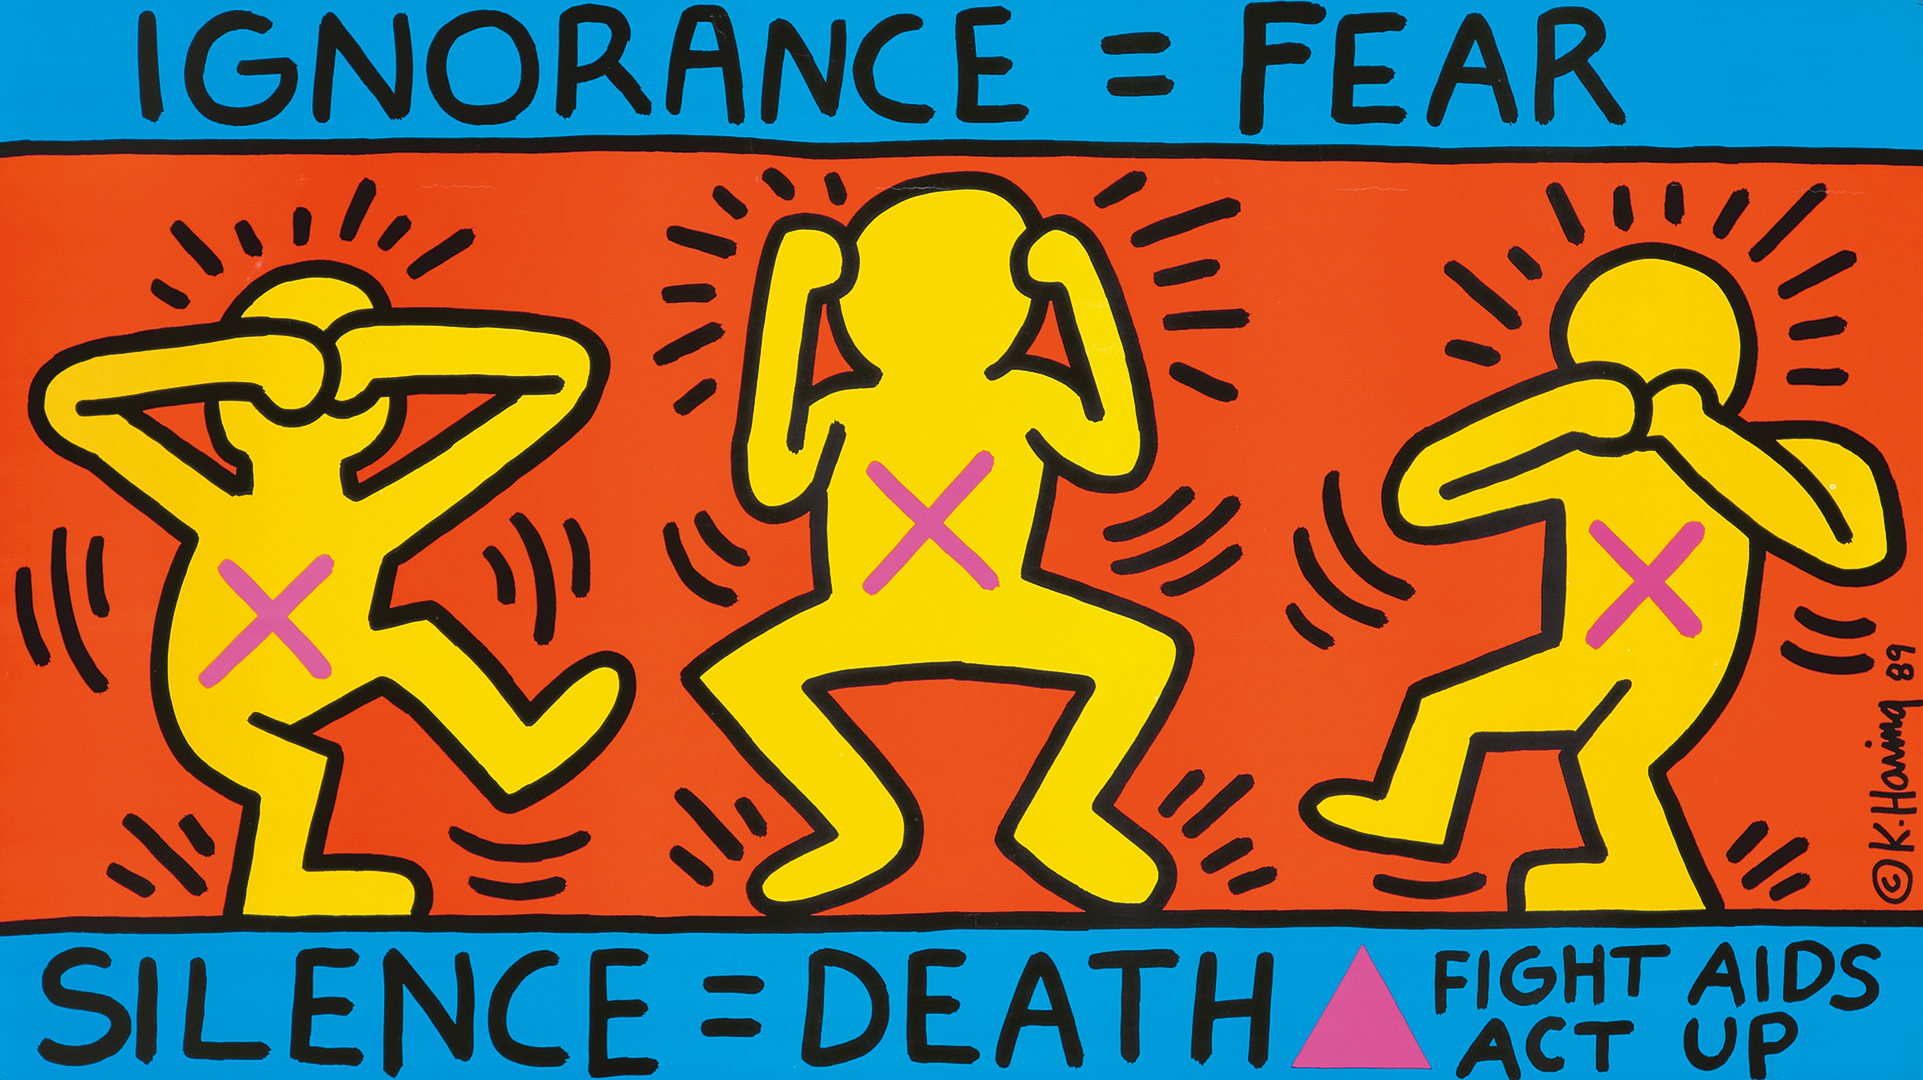 298. Act Up / Ignorance = Fear. 1989.